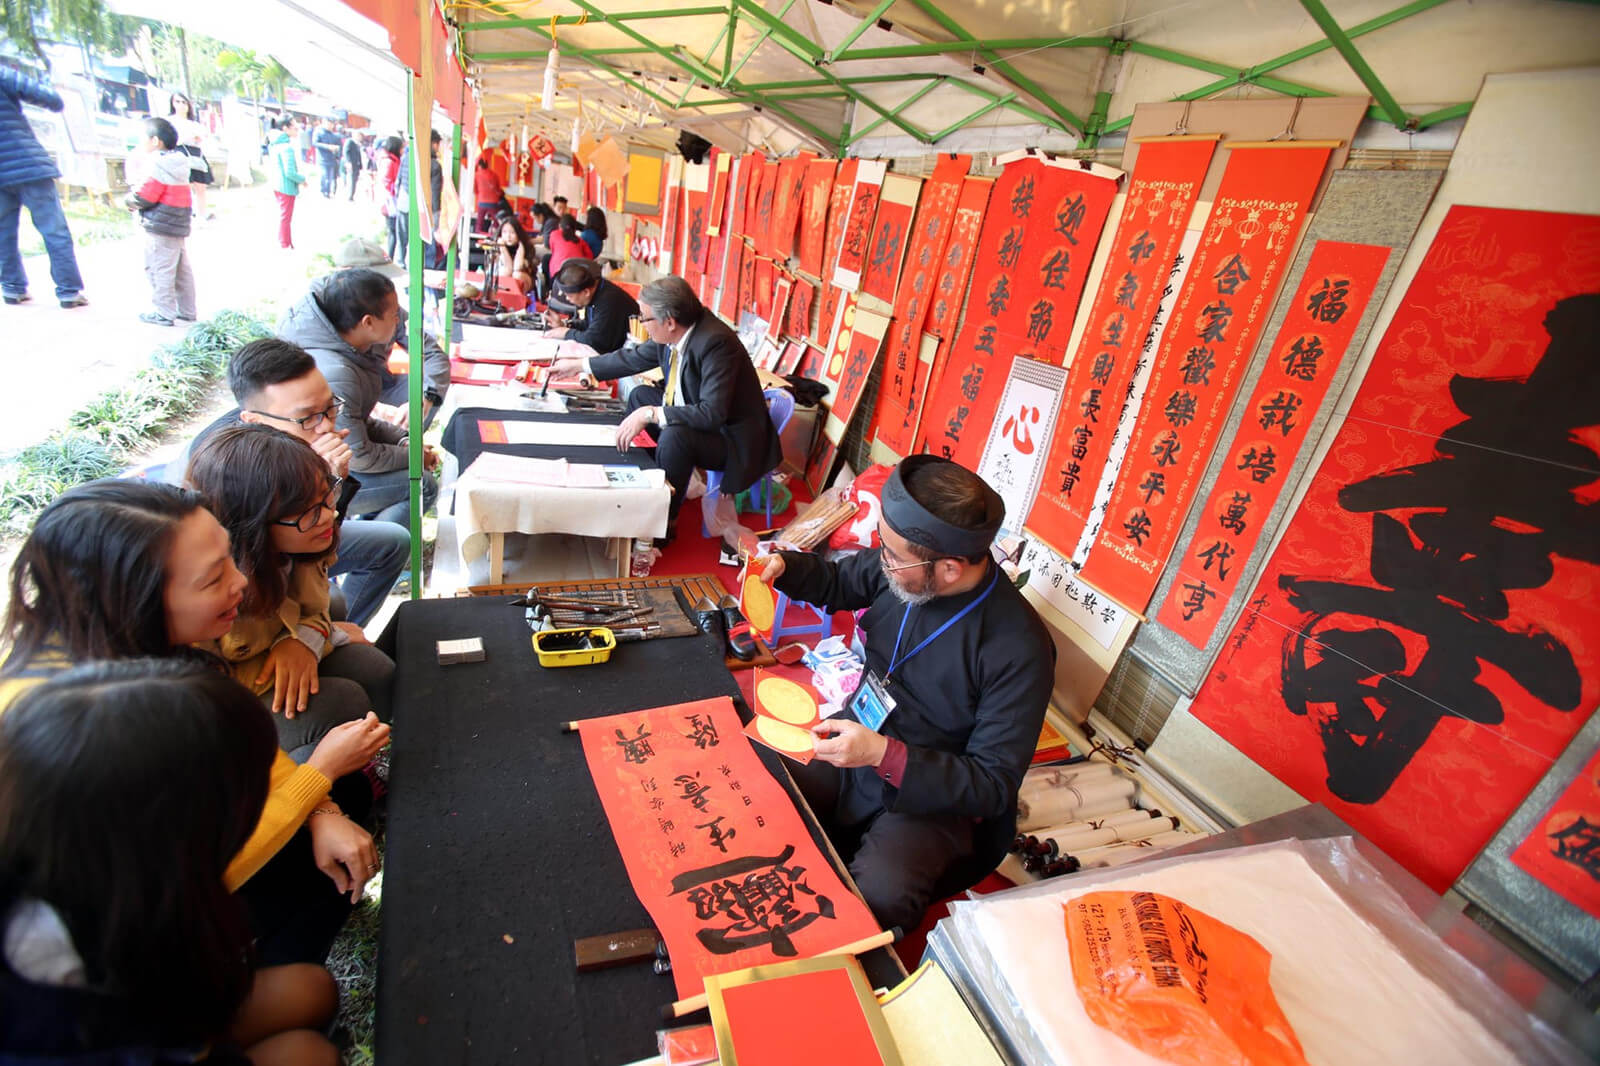 Calligraphy during the beginning of every year by the Temple of Literature - Source: Internet